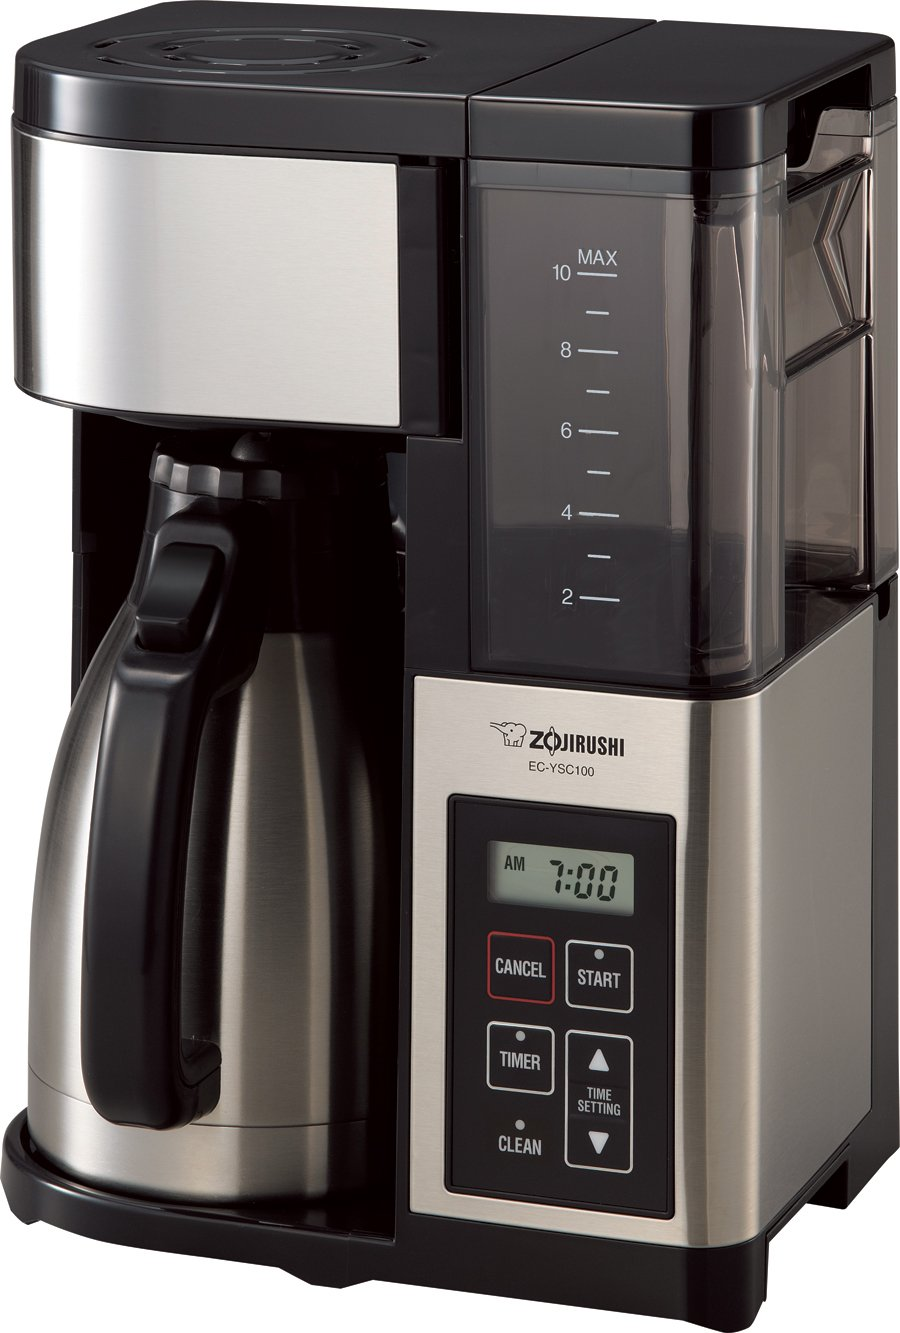 Zojirushi Coffee Maker EC-YSC100: The 10 Cup Device for A Hot and Fresh Concoction